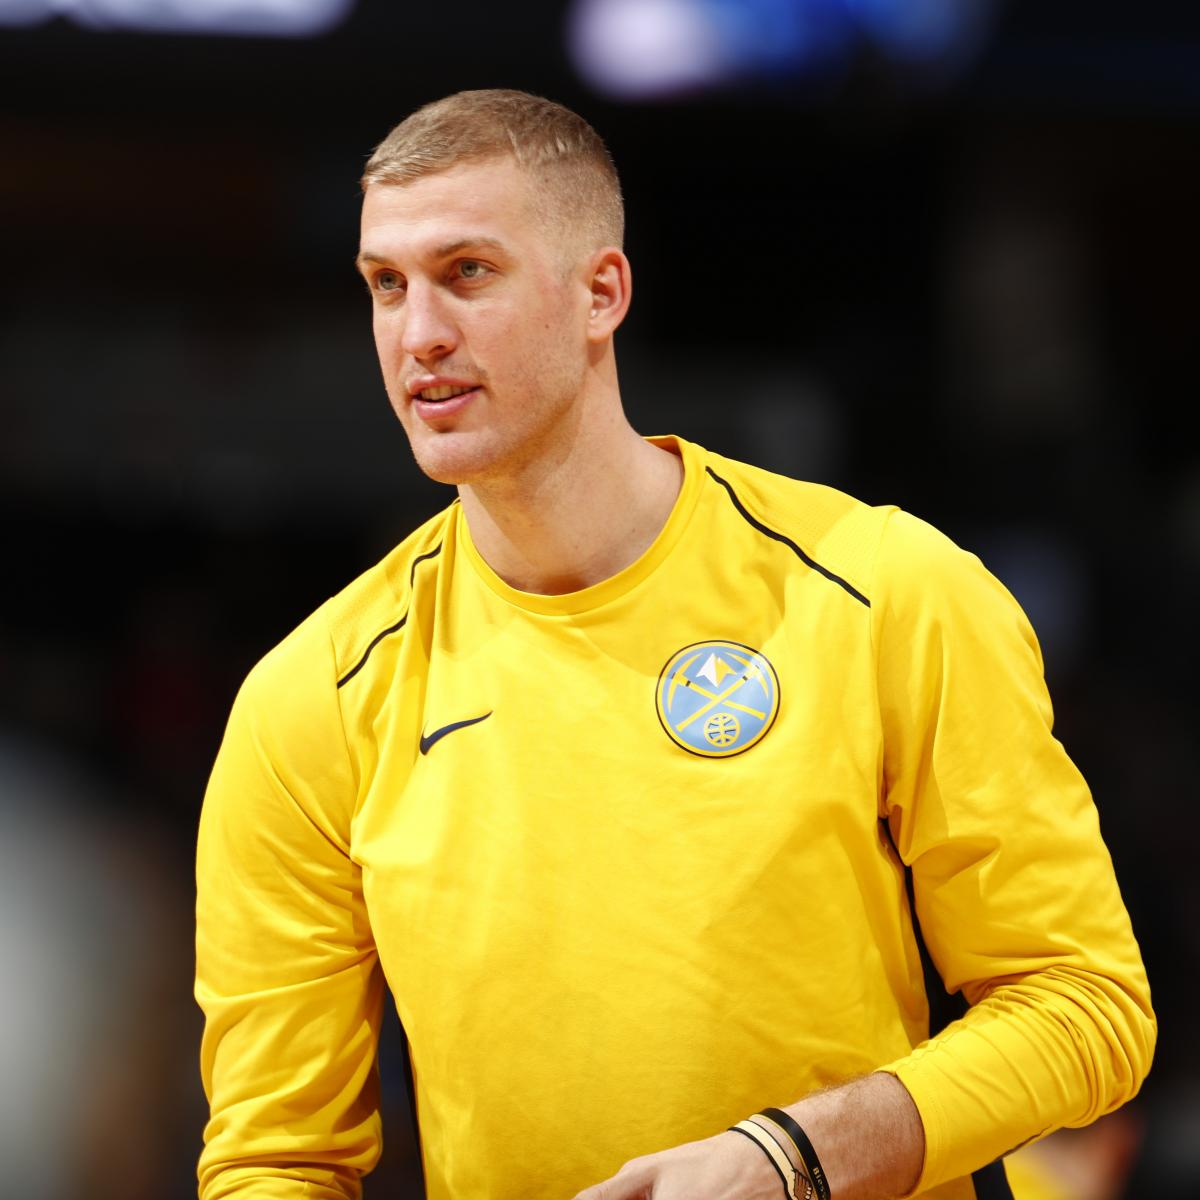 NBA Trade Rumors: Nuggets Might Have To Make Mason Plumlee